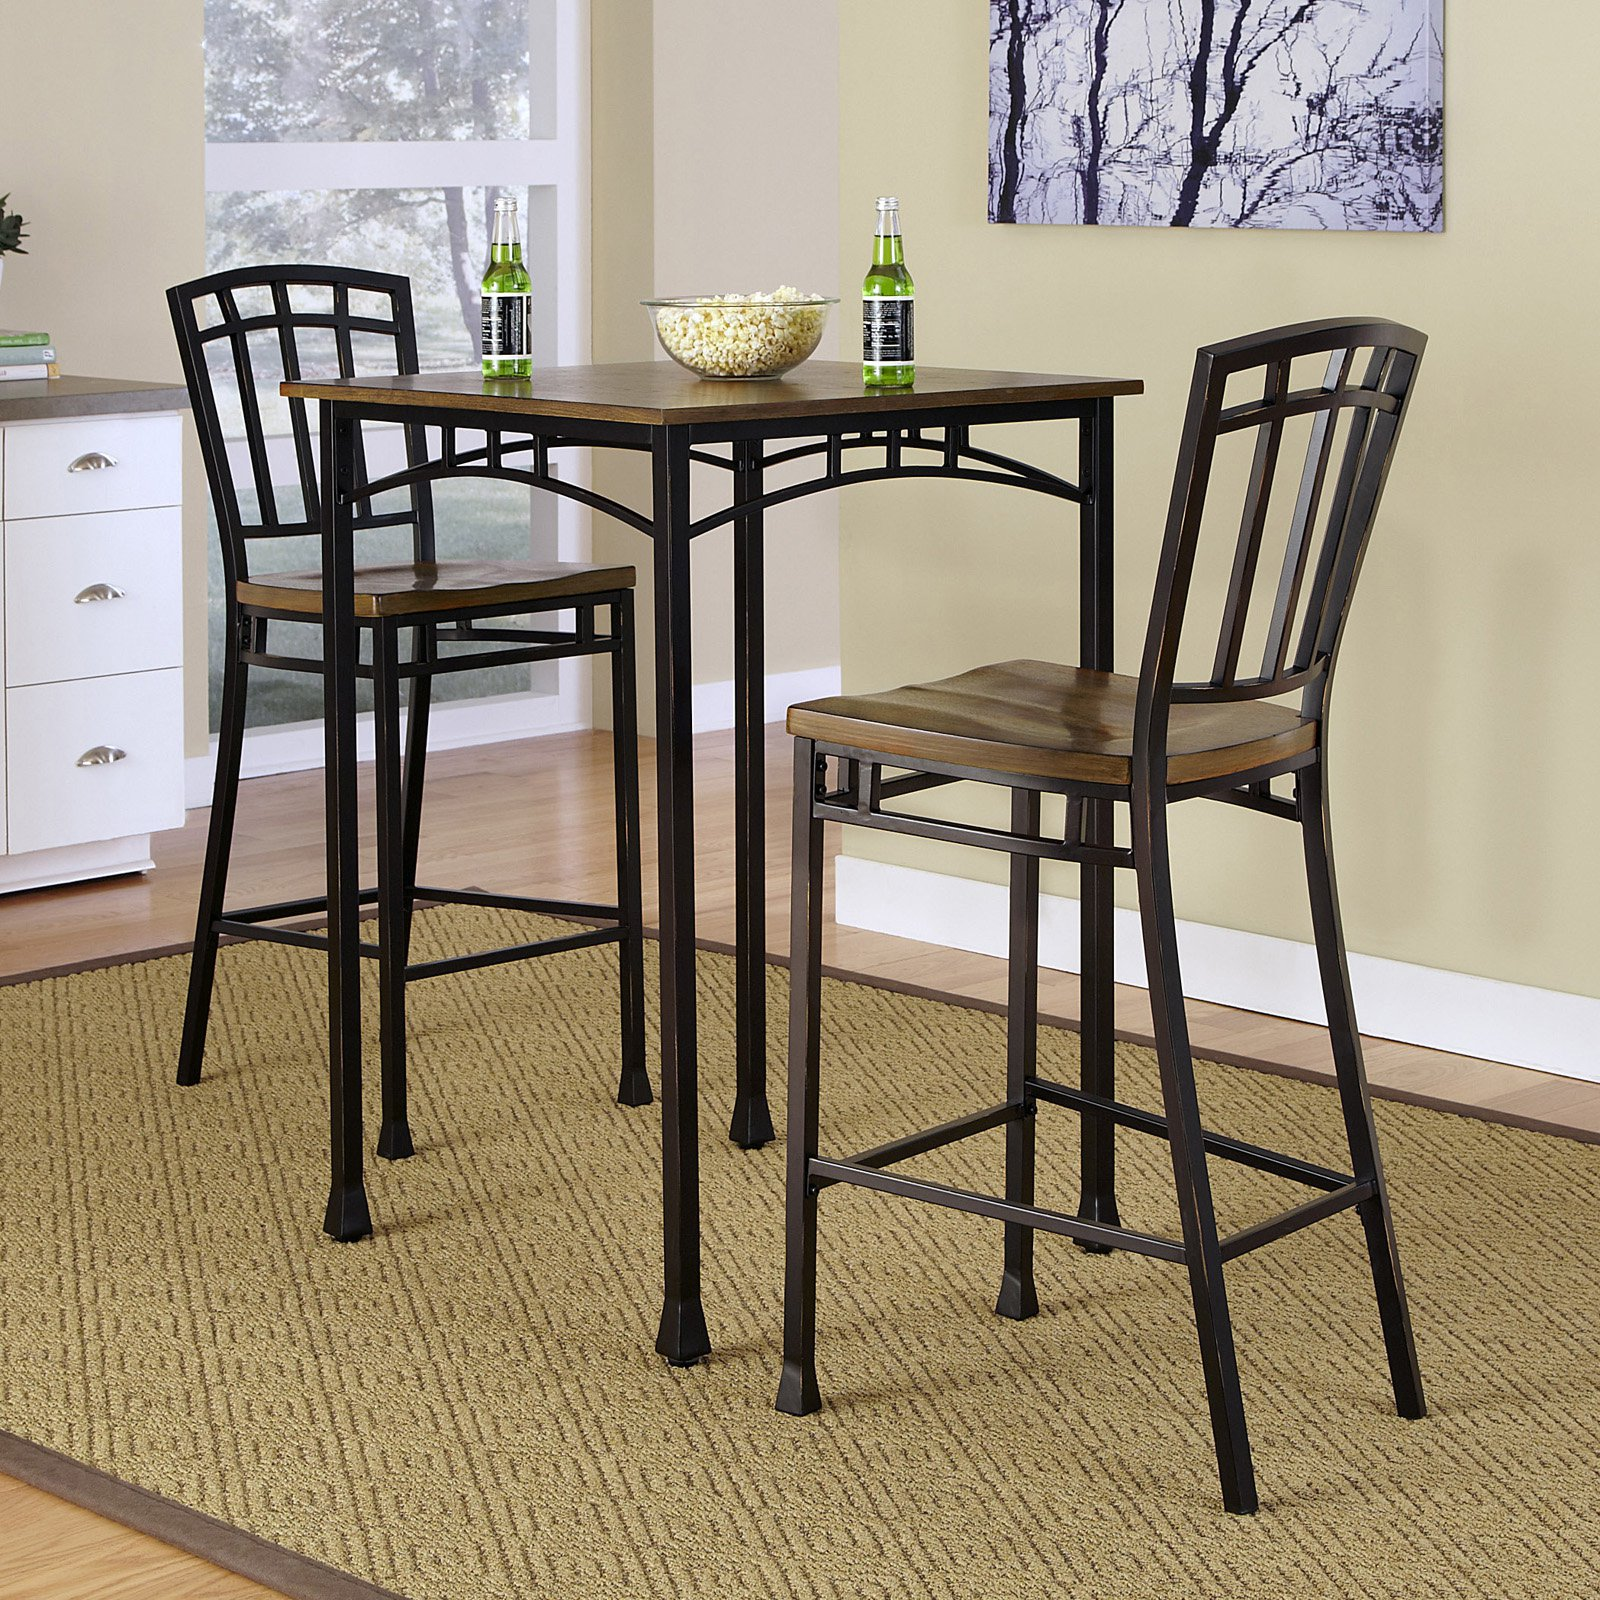 Modern Craftsman 3PC Bistro Set